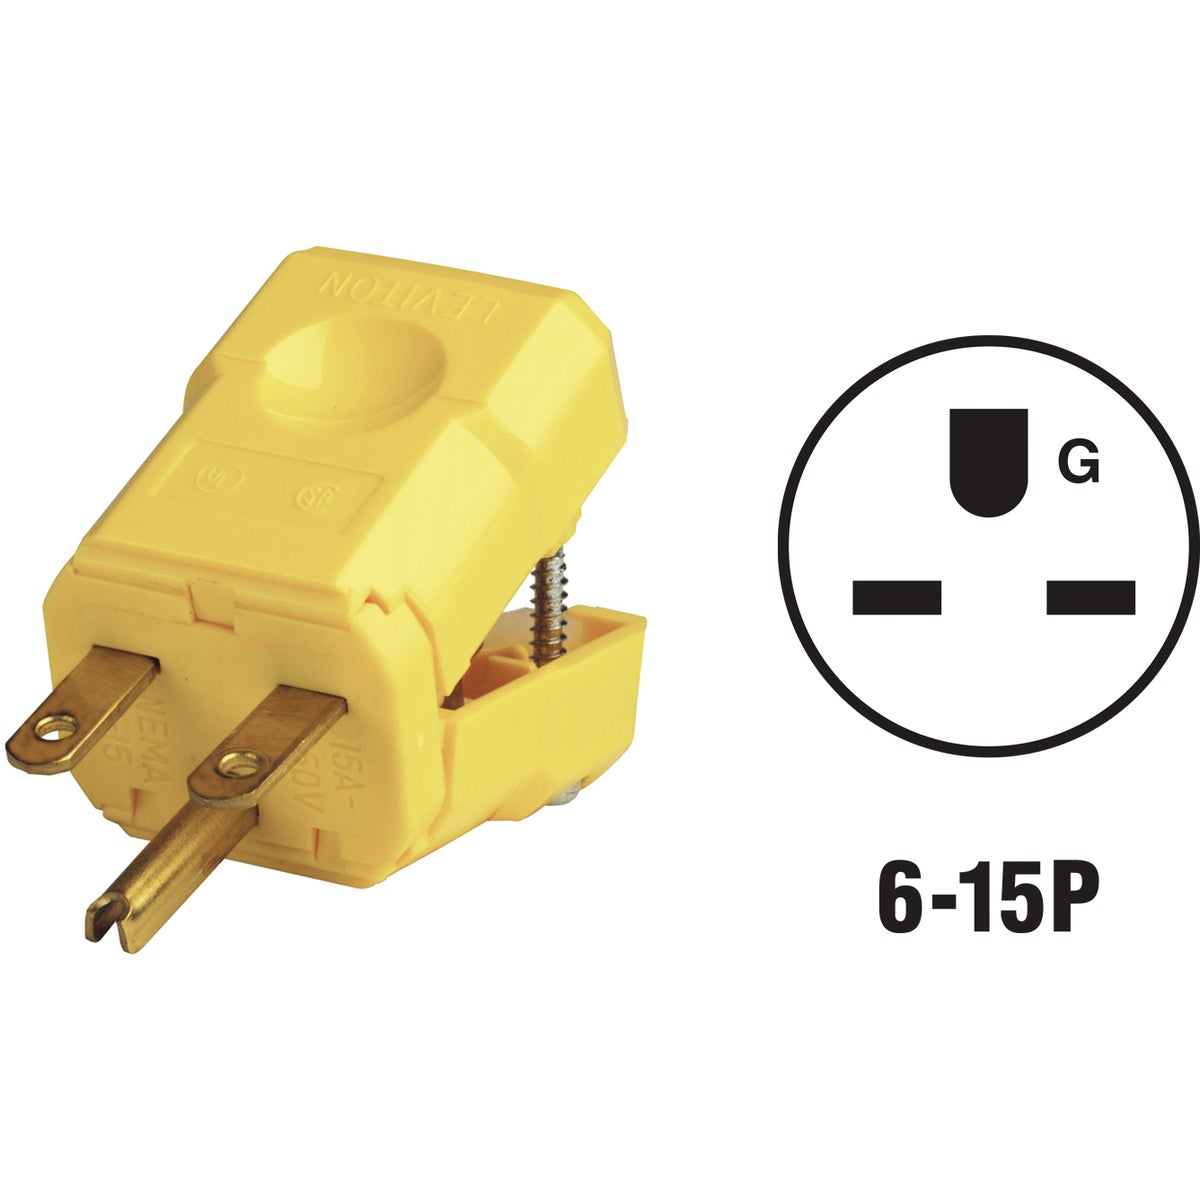 15A YEL NYLON CORD PLUG - 021-15656 by Leviton Mfg Co